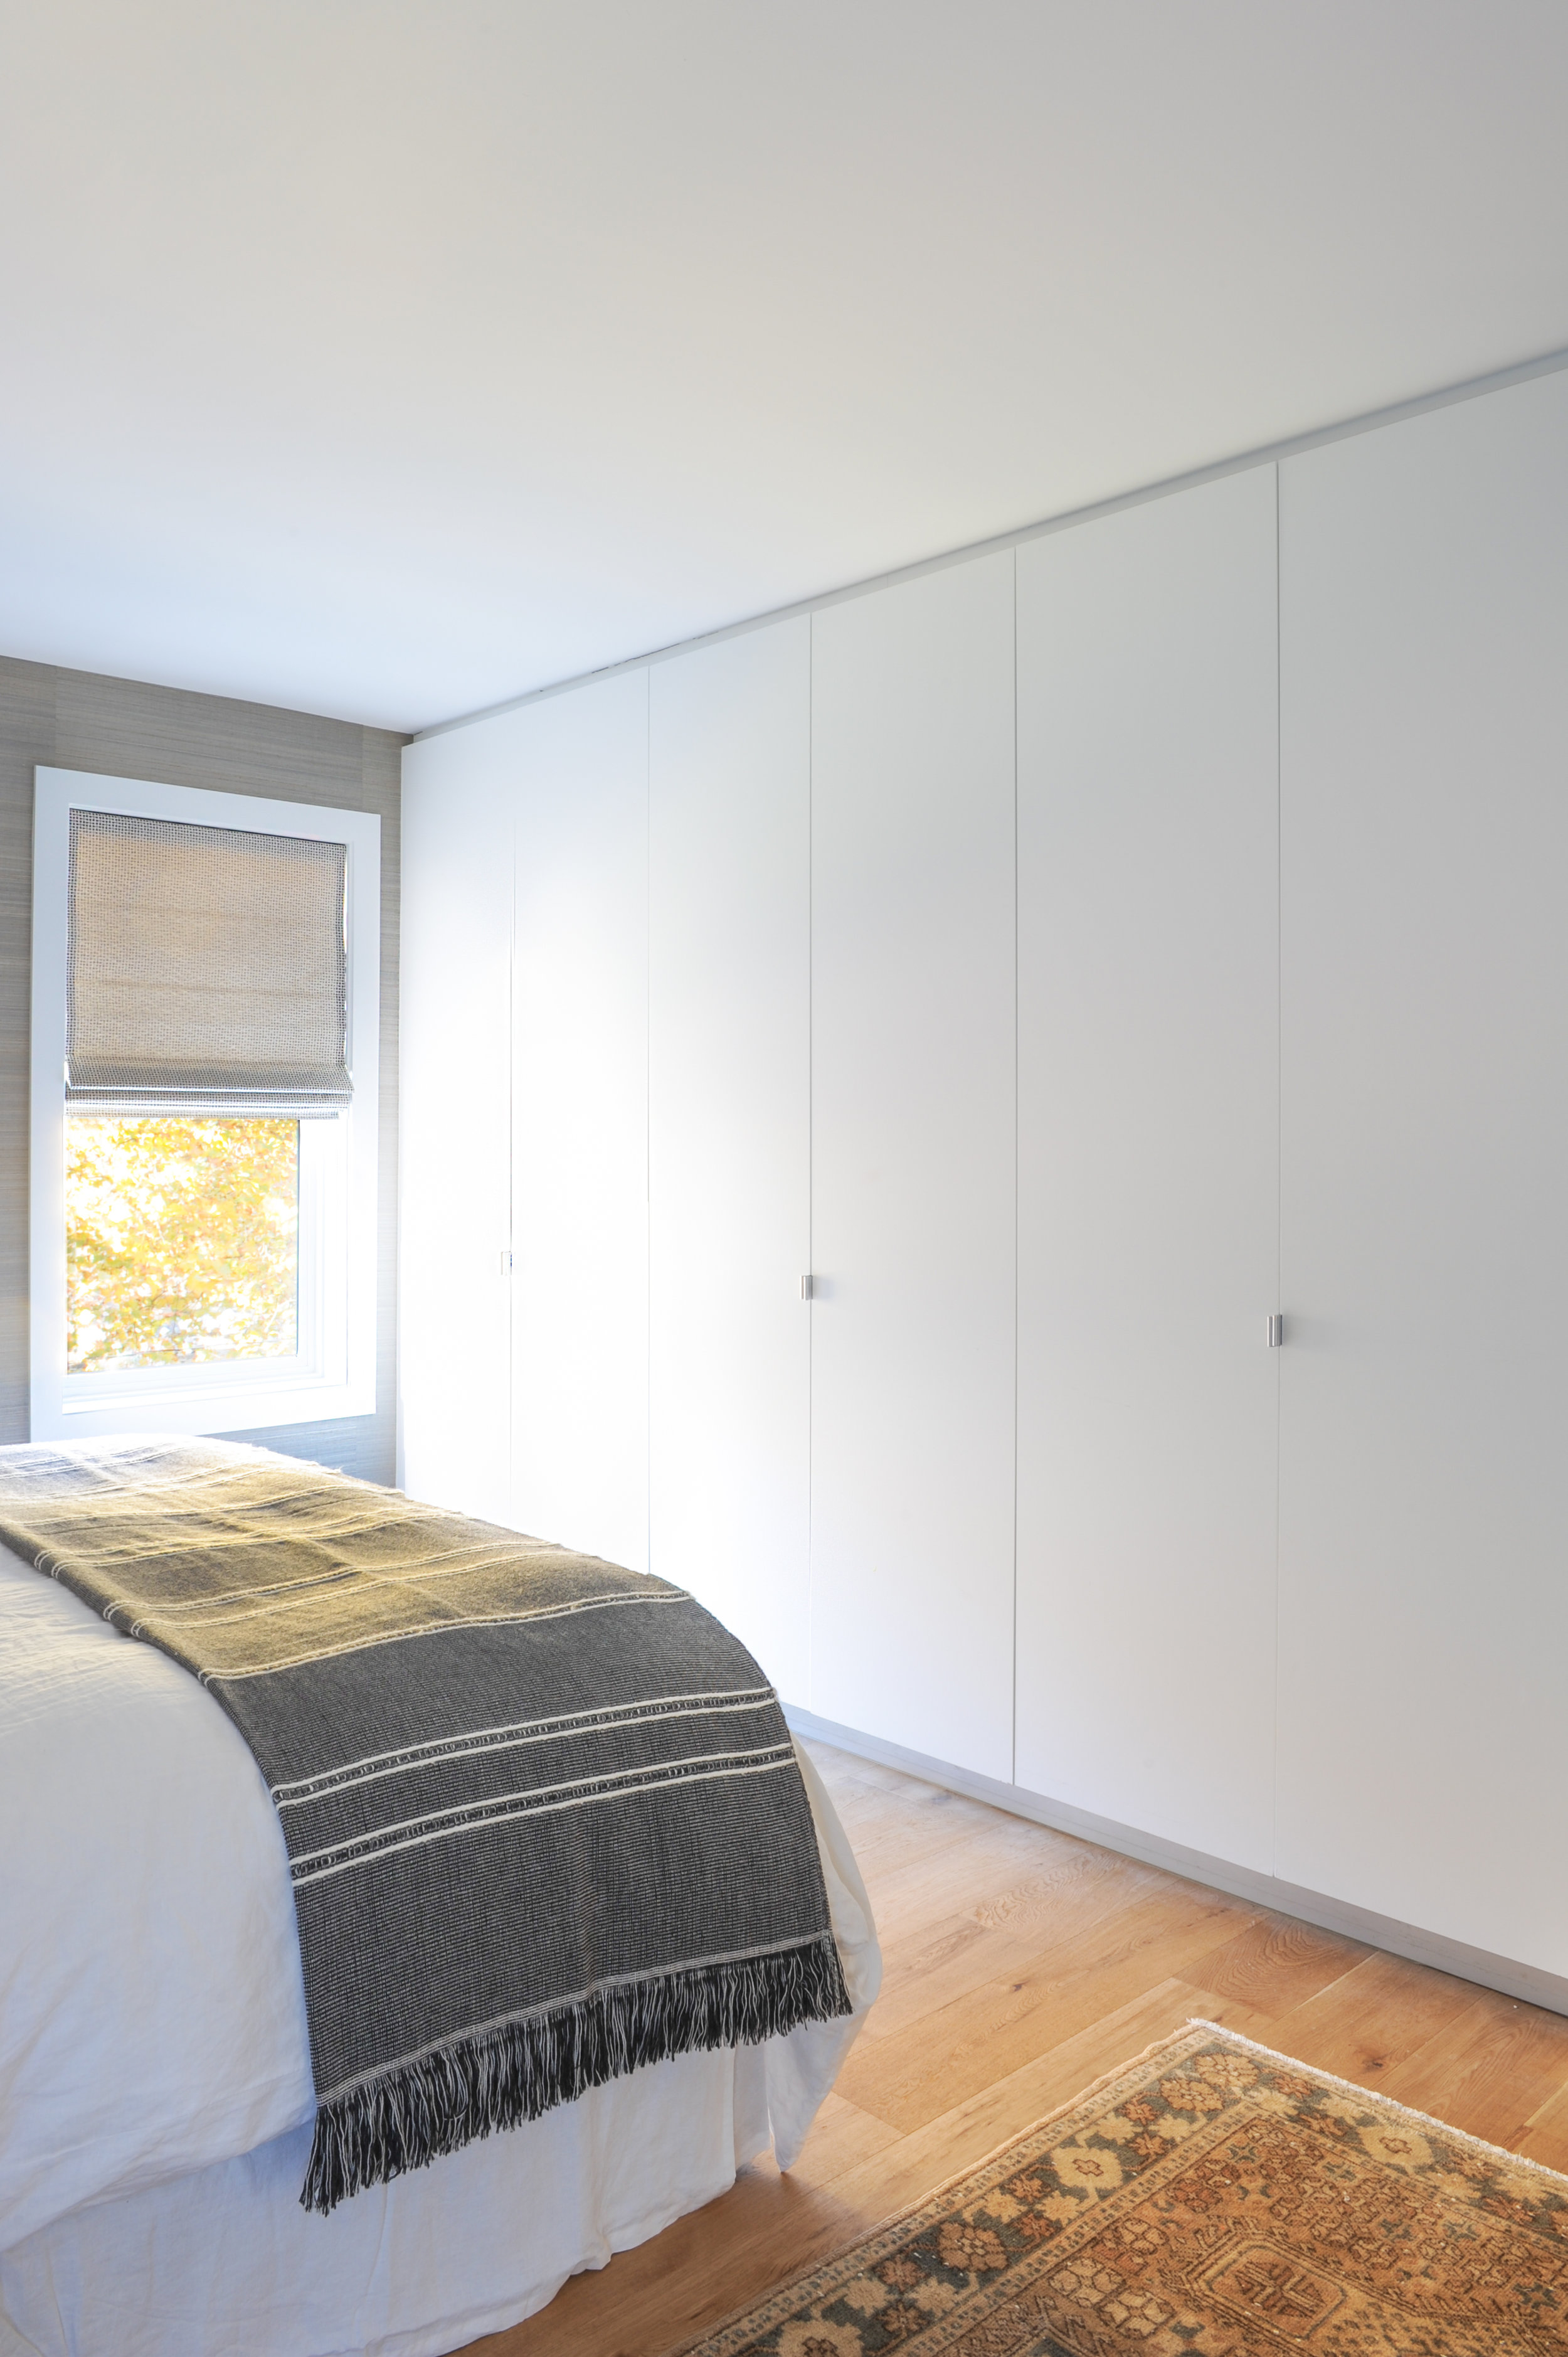 The bedroom is fitted with large floor to ceiling closet doors,